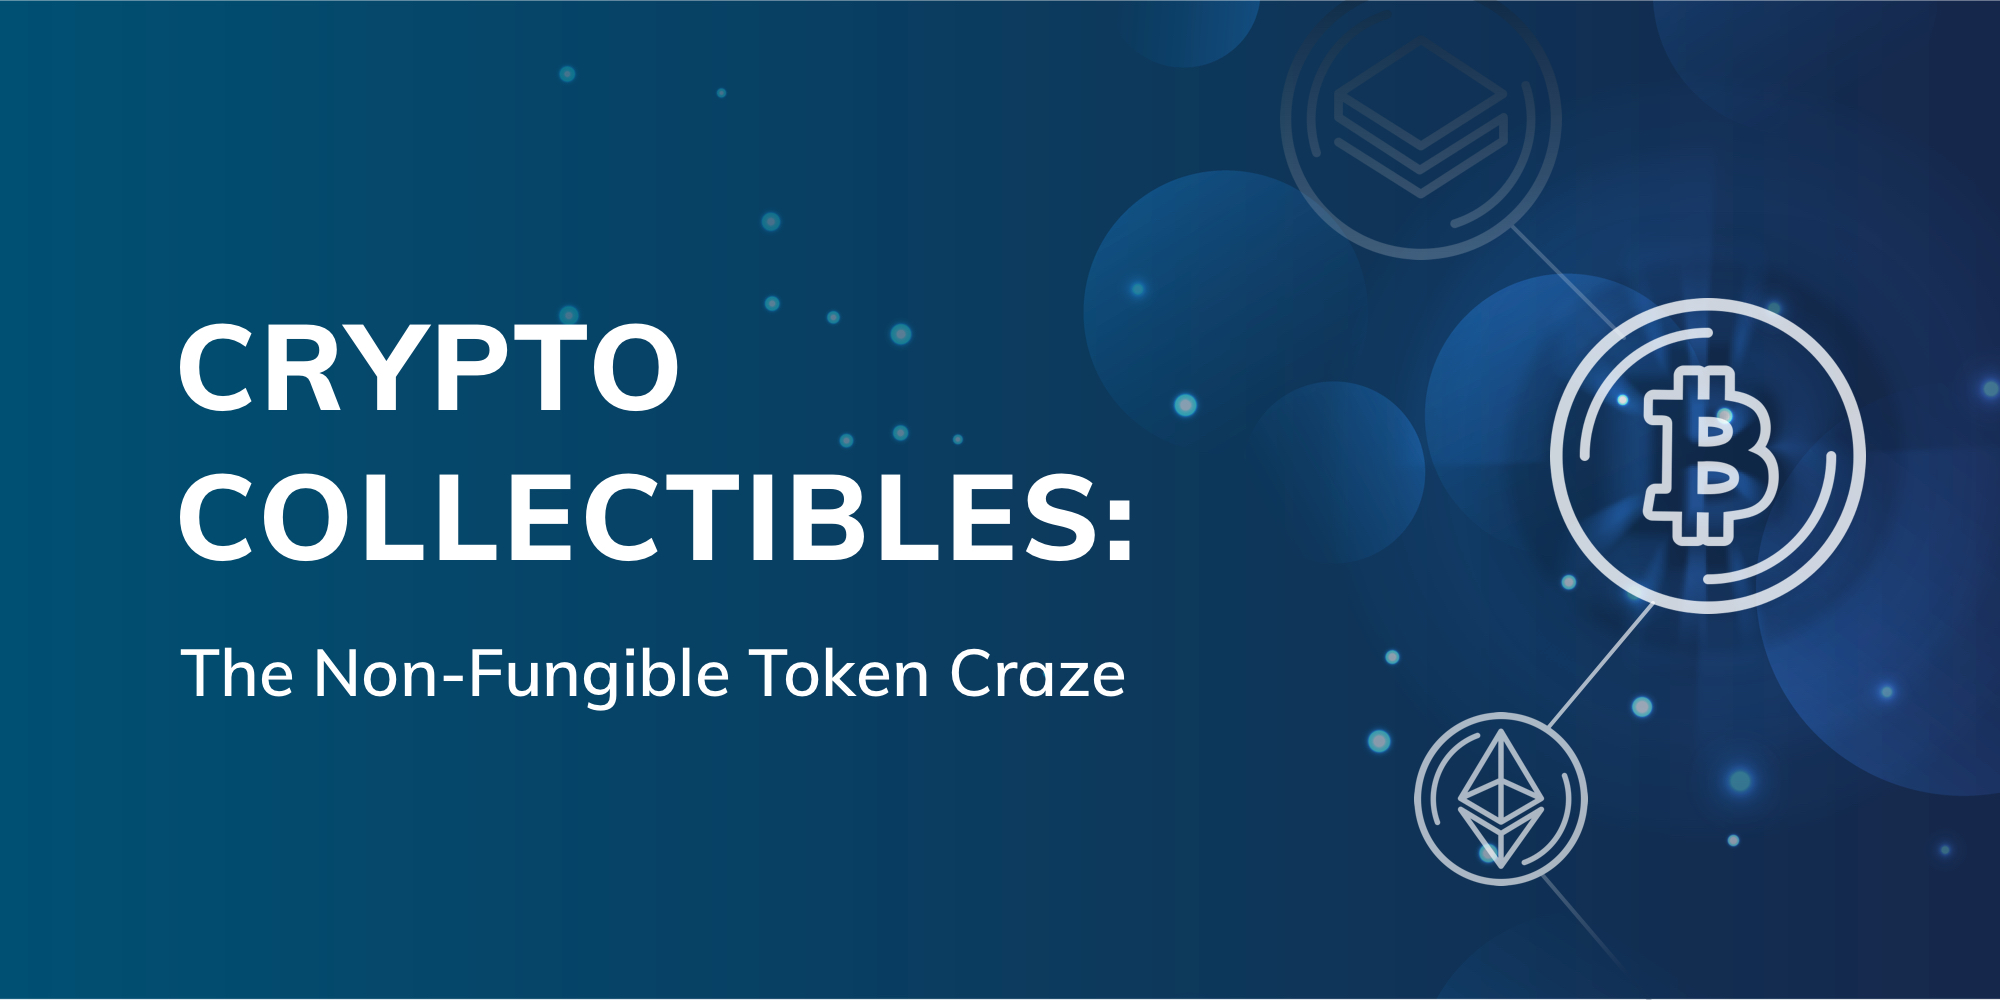 Blog image for Crypto Collectibles: The non-fungible token craze